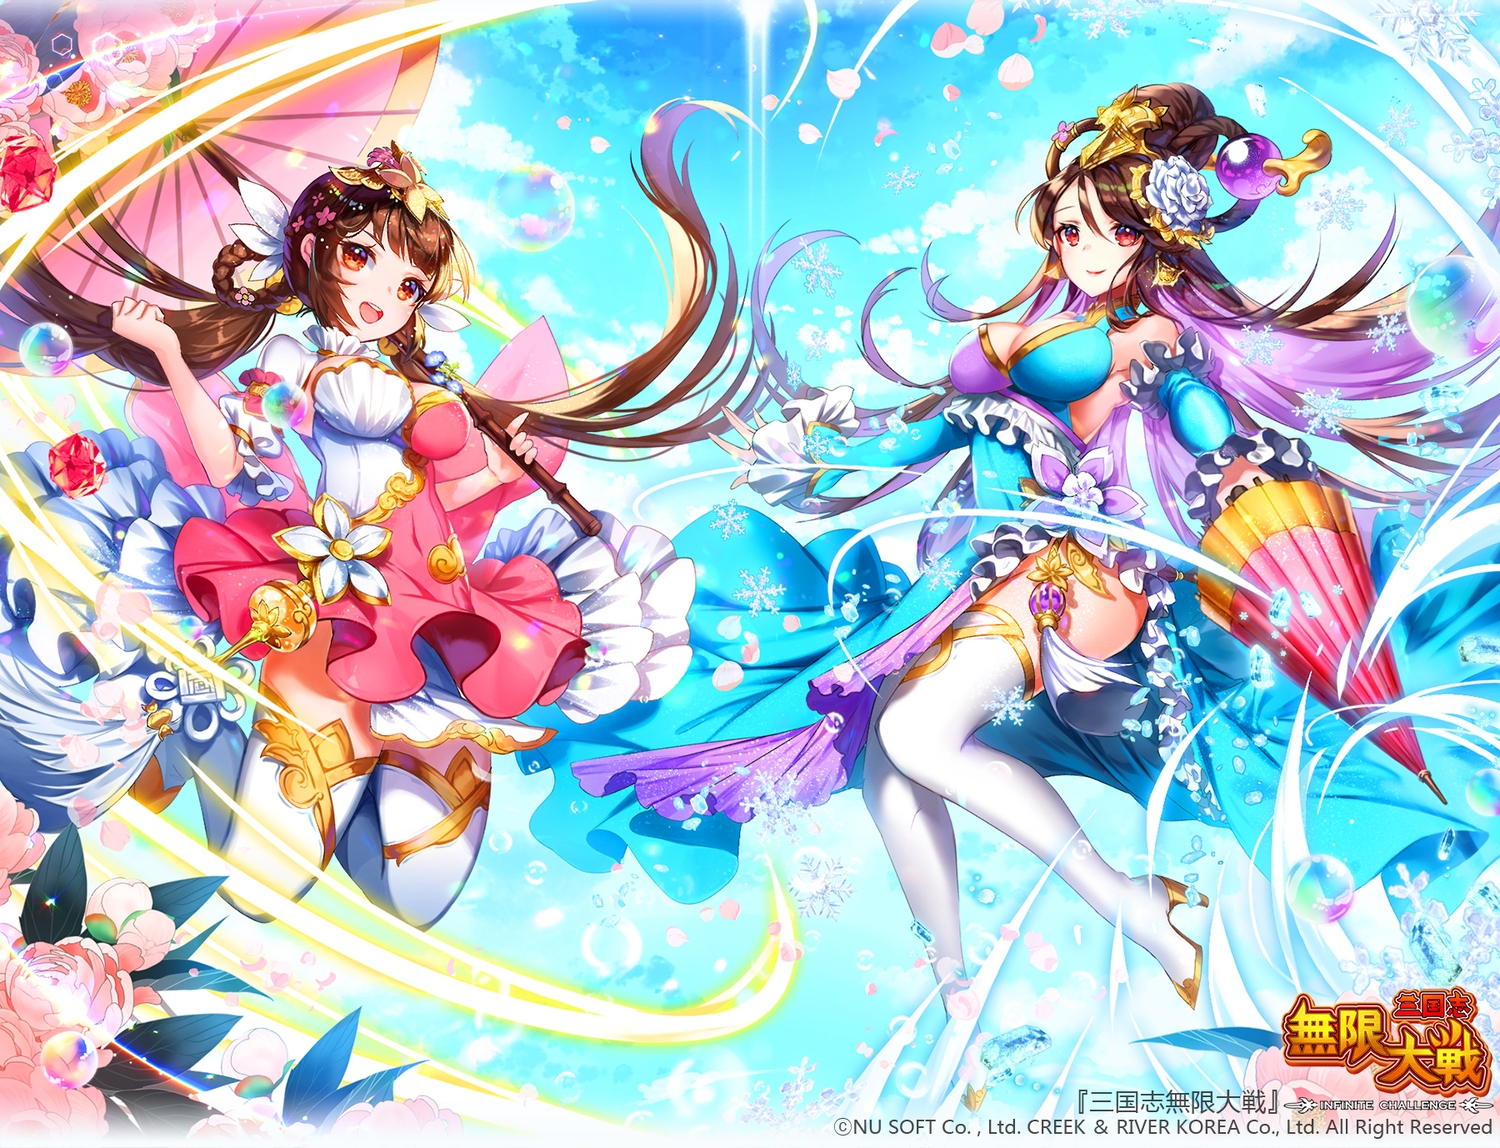 2girls applecaramel_(acaramel) braids brown_hair clouds dress flowers logo long_hair orange_eyes original red_eyes sky thighhighs twintails umbrella